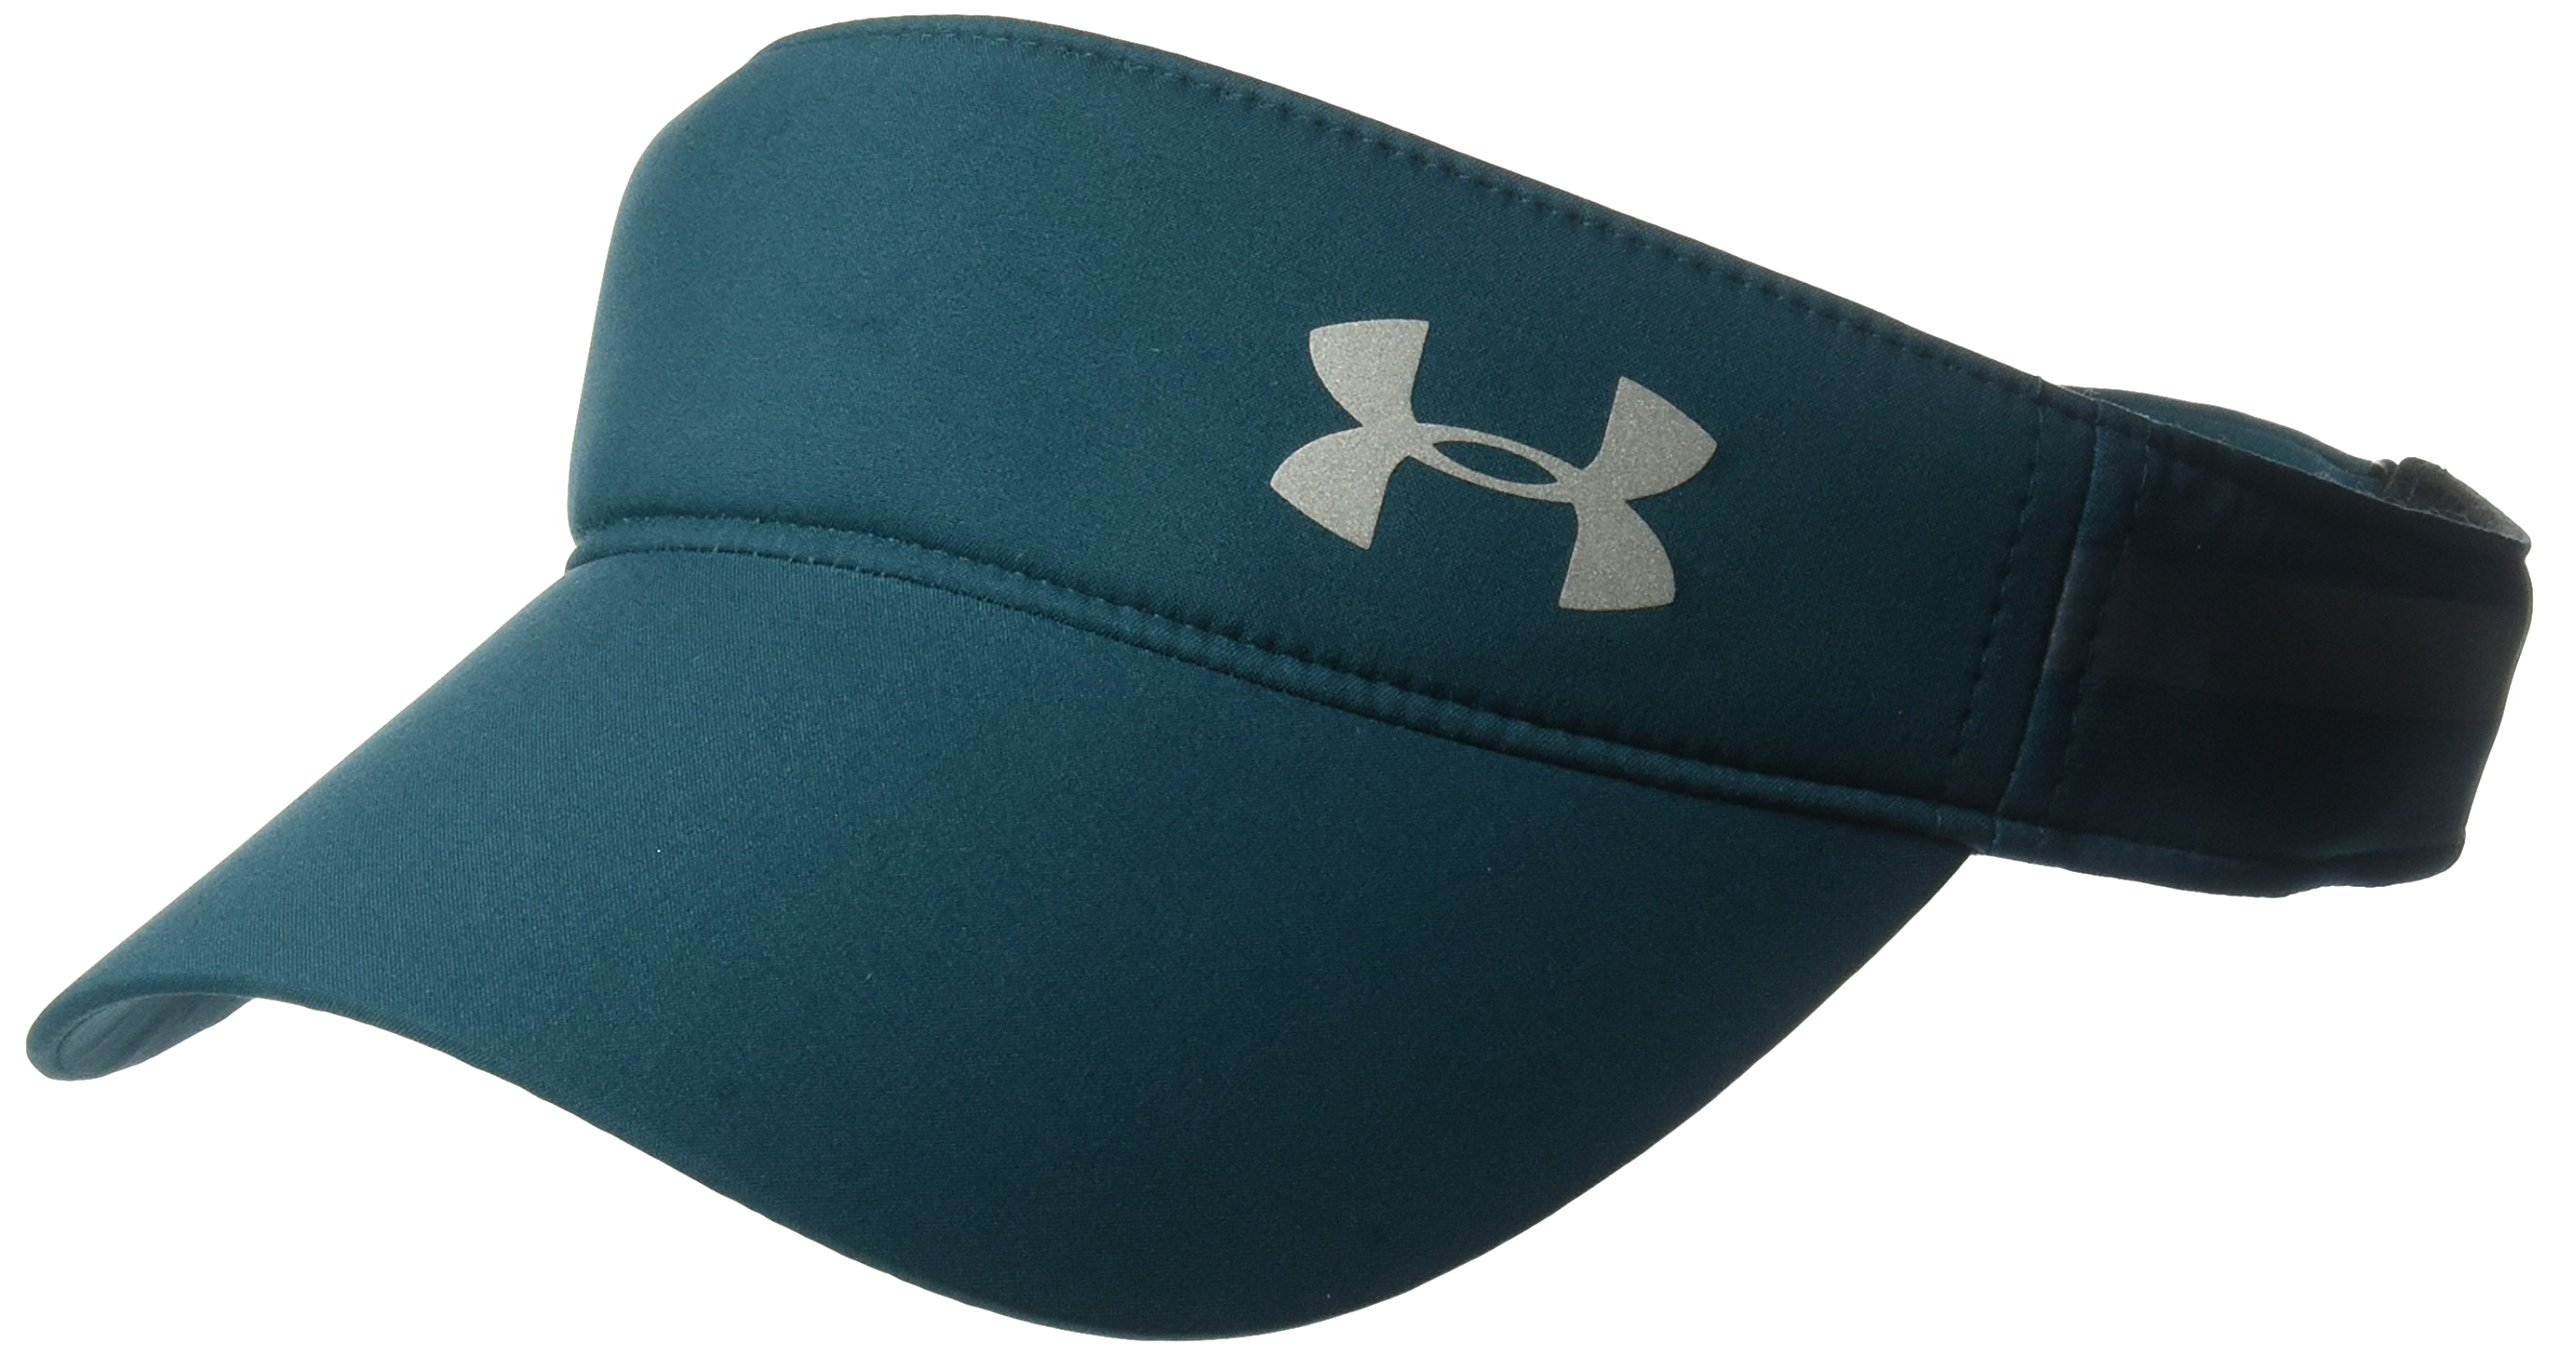 Under Armour Women's Fly-By Visor, Tourmaline Teal (716)/Silver, One Size Fits All